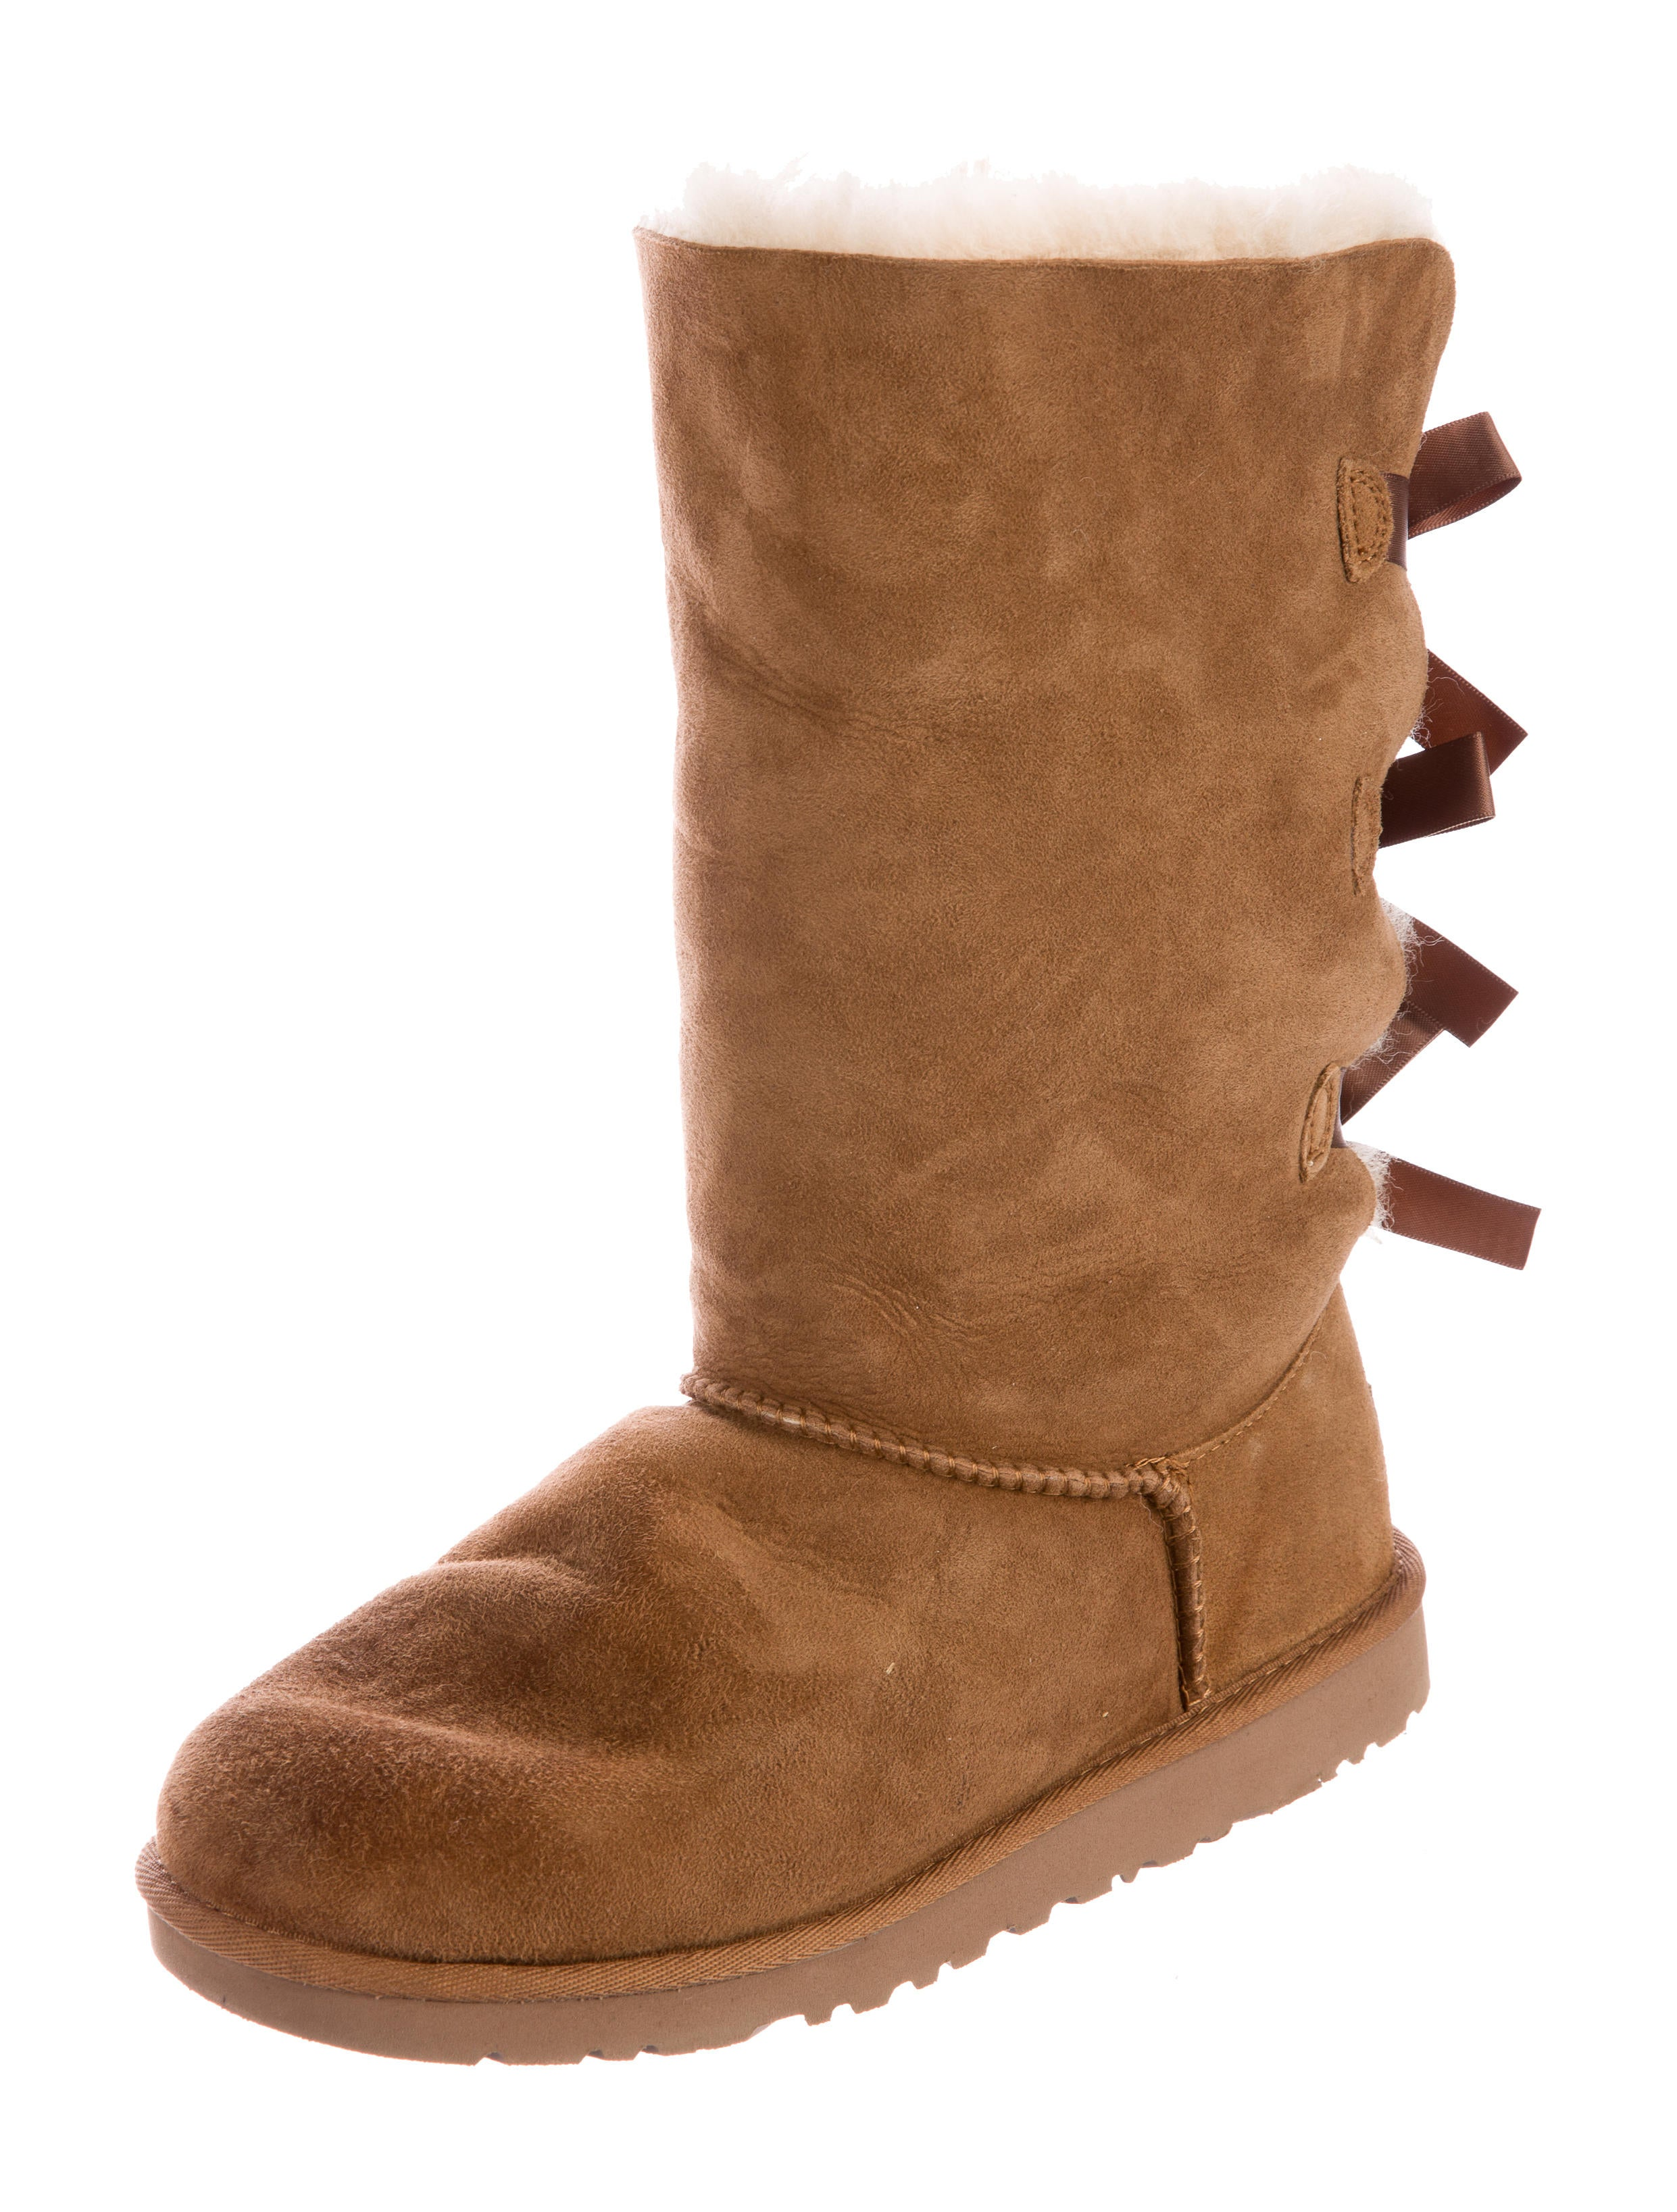 ugg australia bailey bow ankle boots shoes wuugg22293